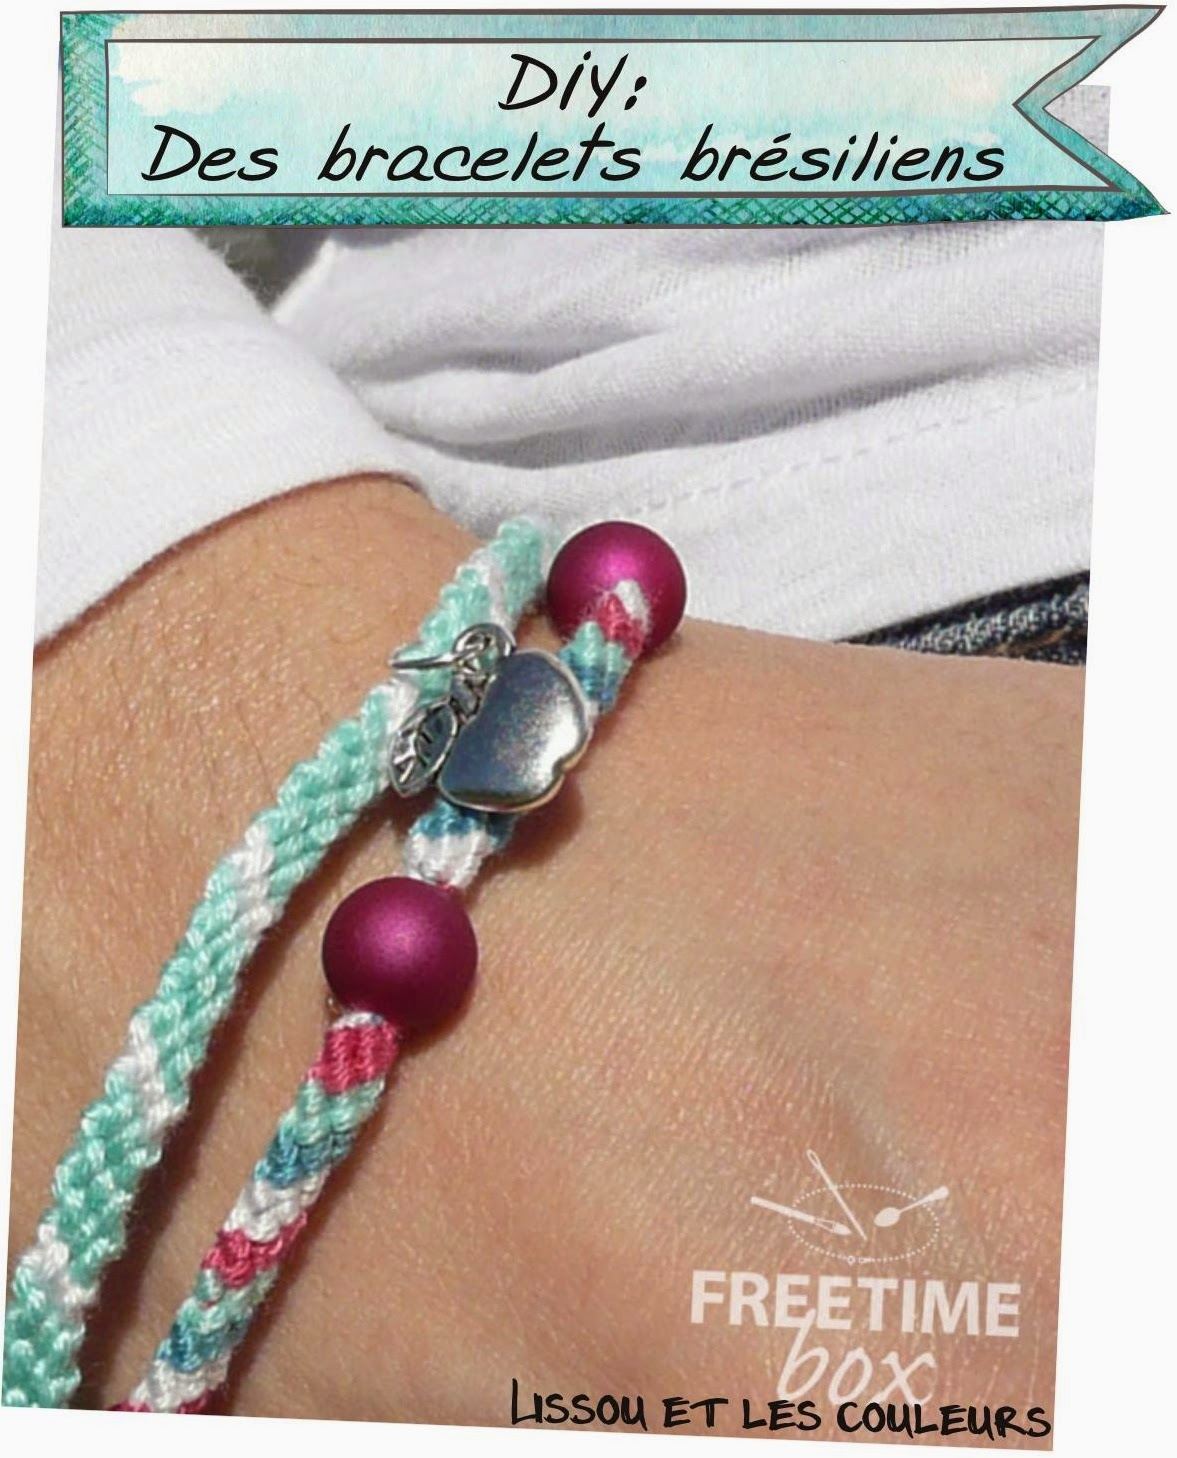 http://www.freetimebox.com/blog/box5-bracelet-bresilien-alice/